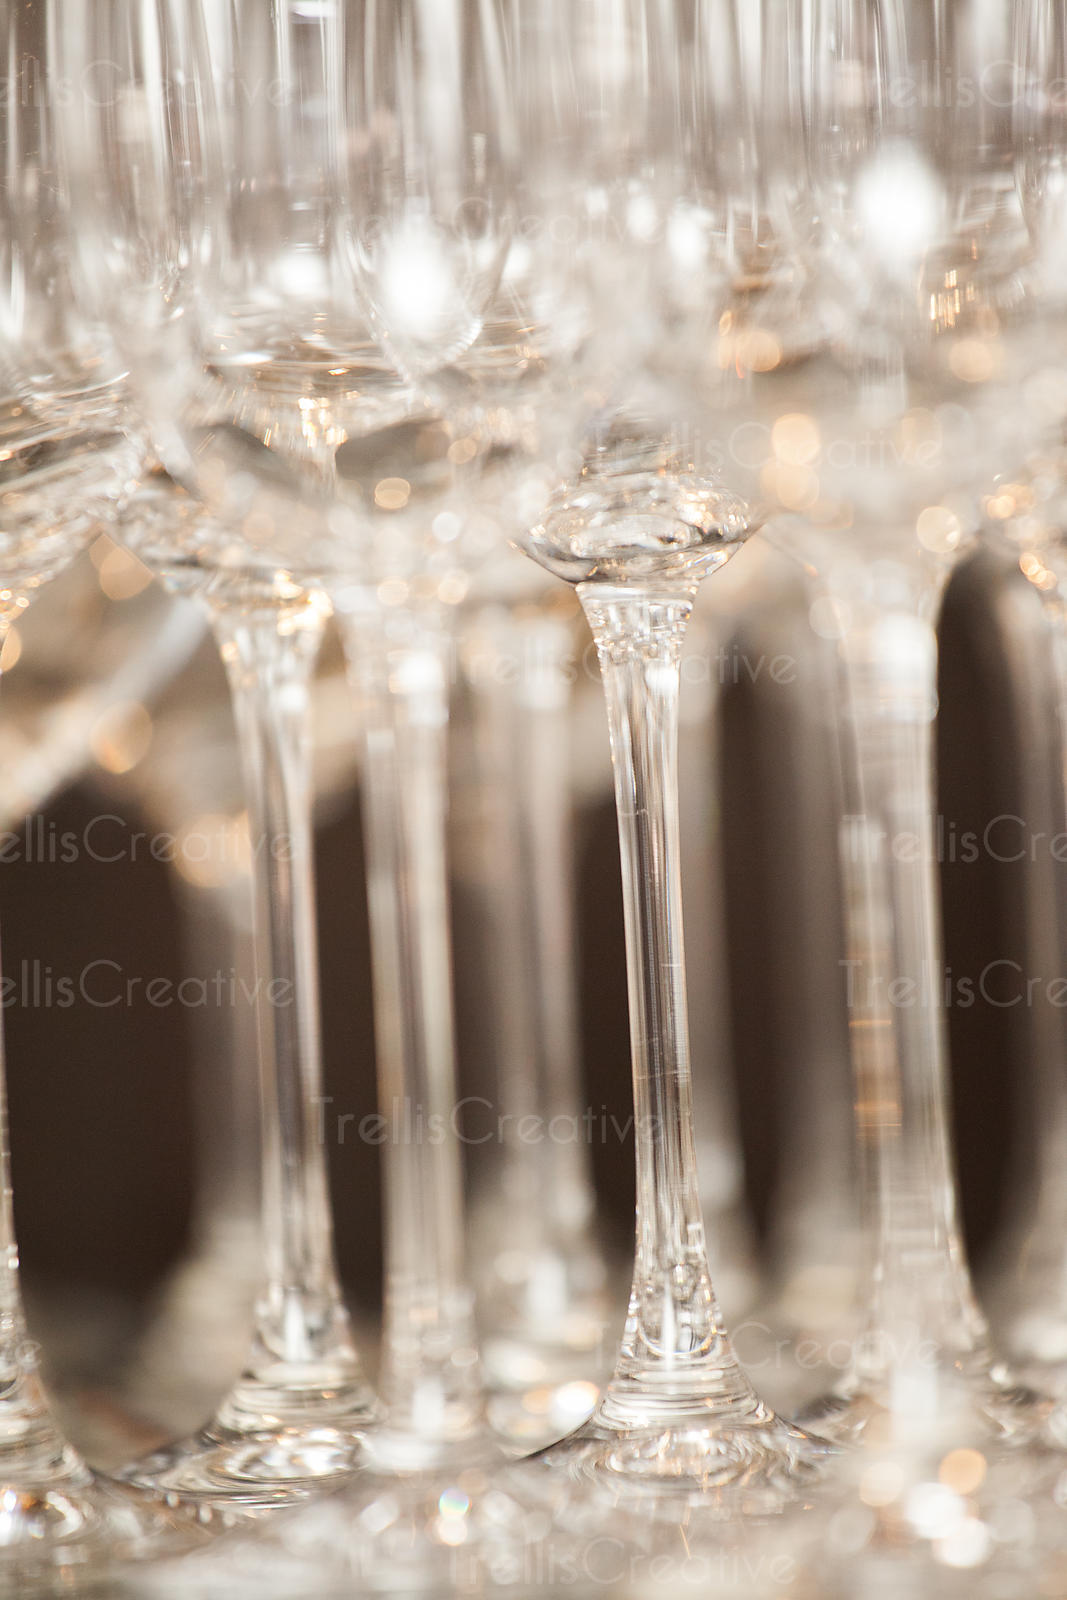 Rows of empty champagne flutes neatly lined up